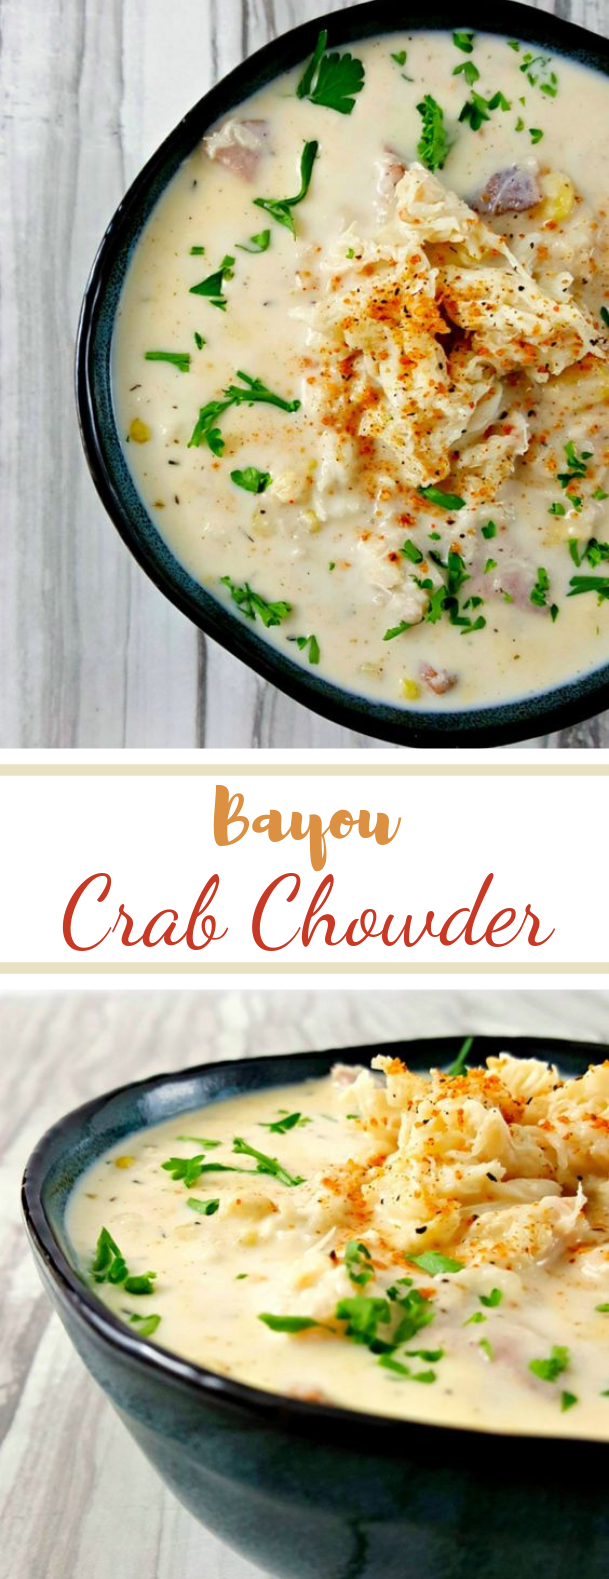 Bayou Crab Chowder #seafood #maindish